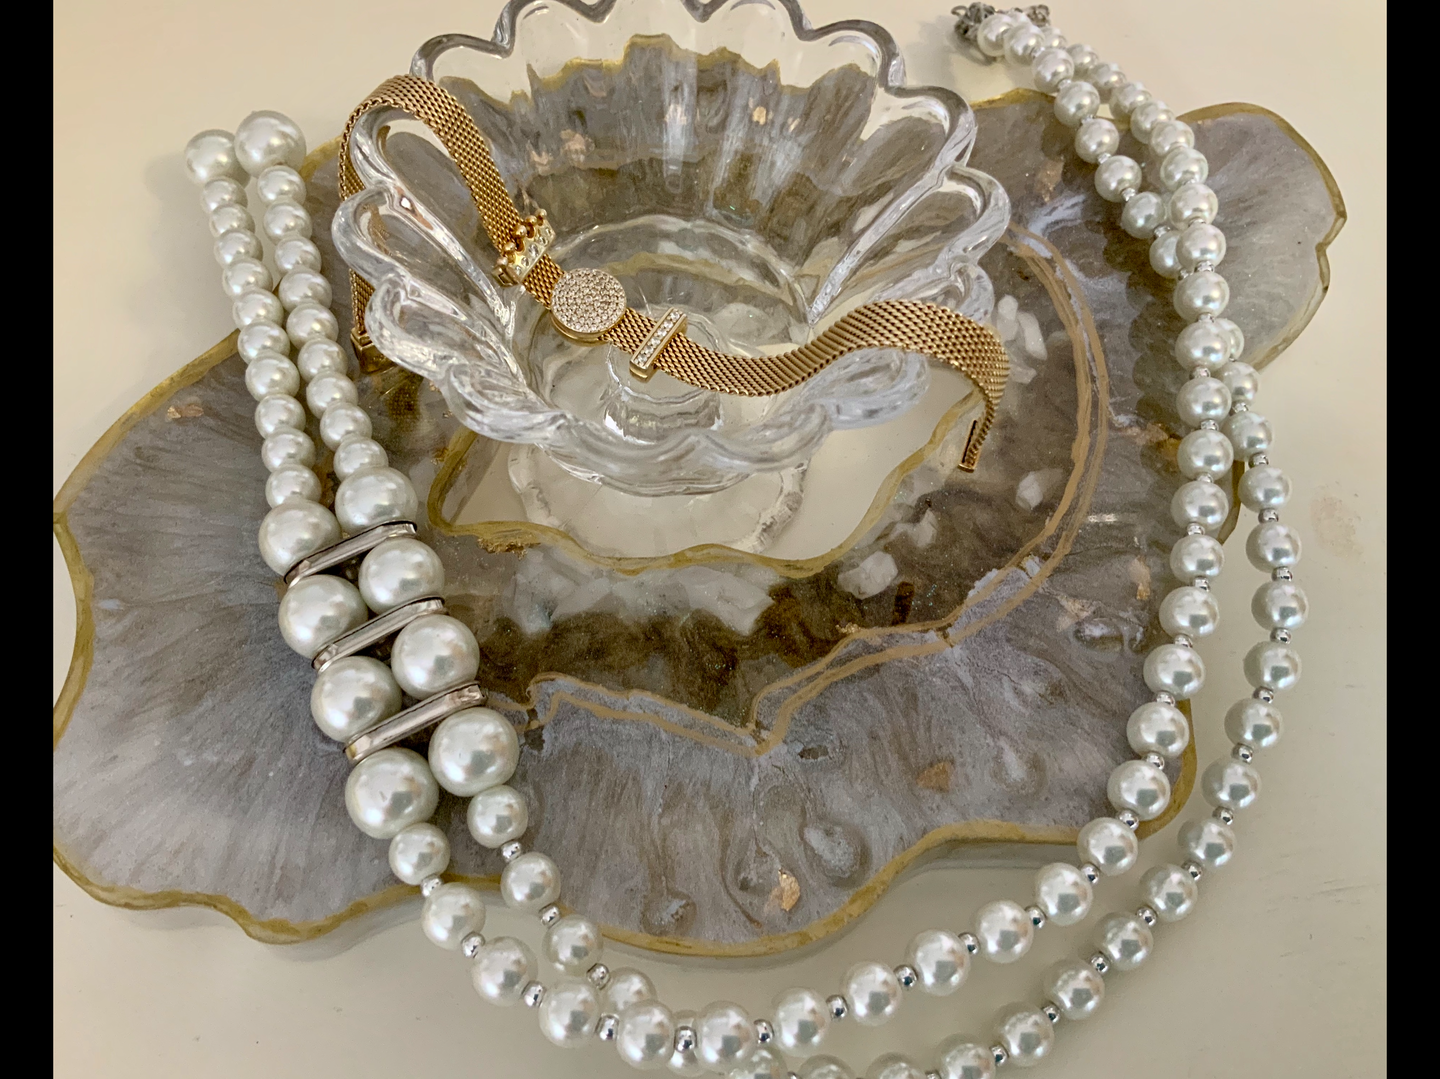 Geode Resin Art Piece/ Jewellery Drape/ Table Centre Piece